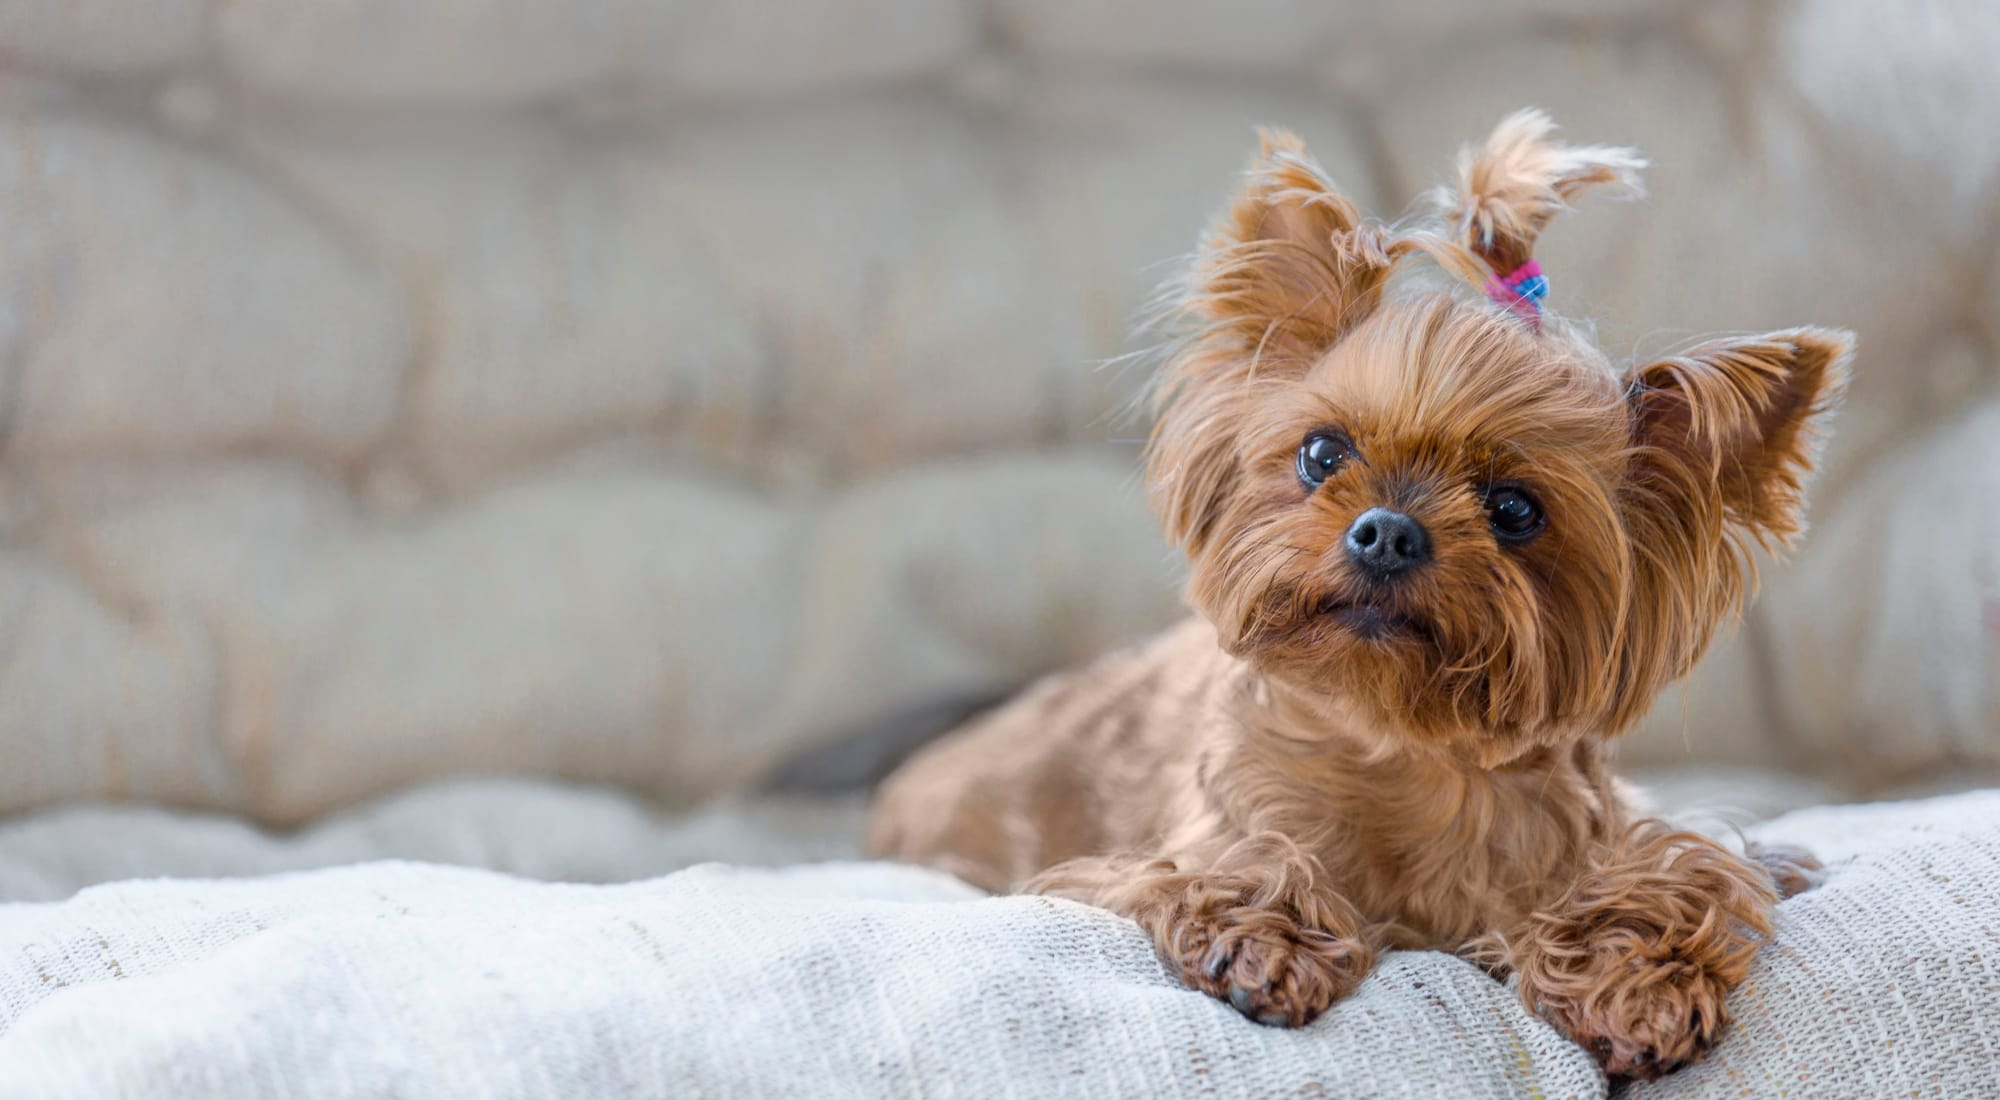 Pet-friendly apartments at The Landmark Apartment Homes in Sunnyvale, California